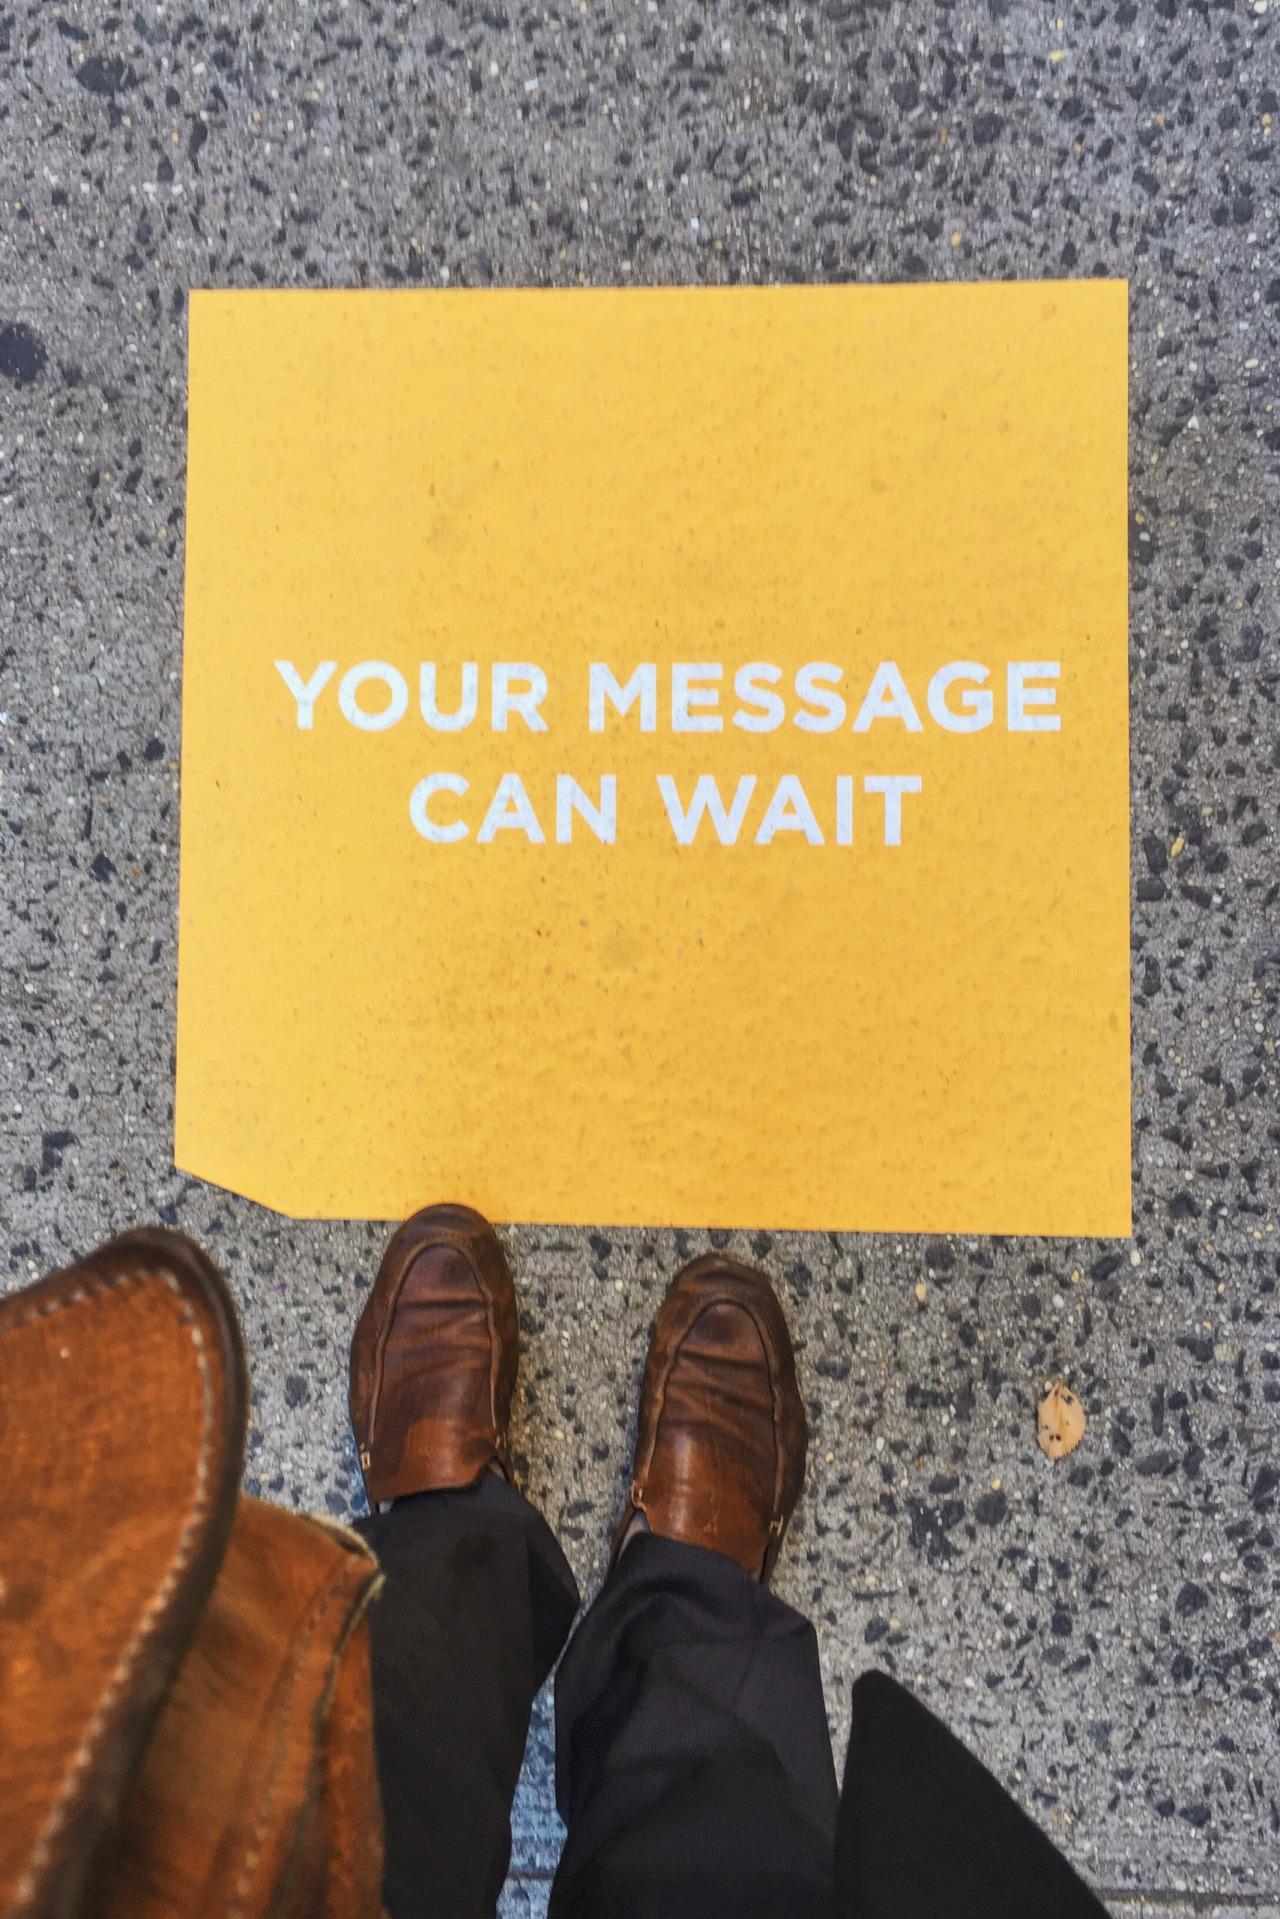 Your message can wait